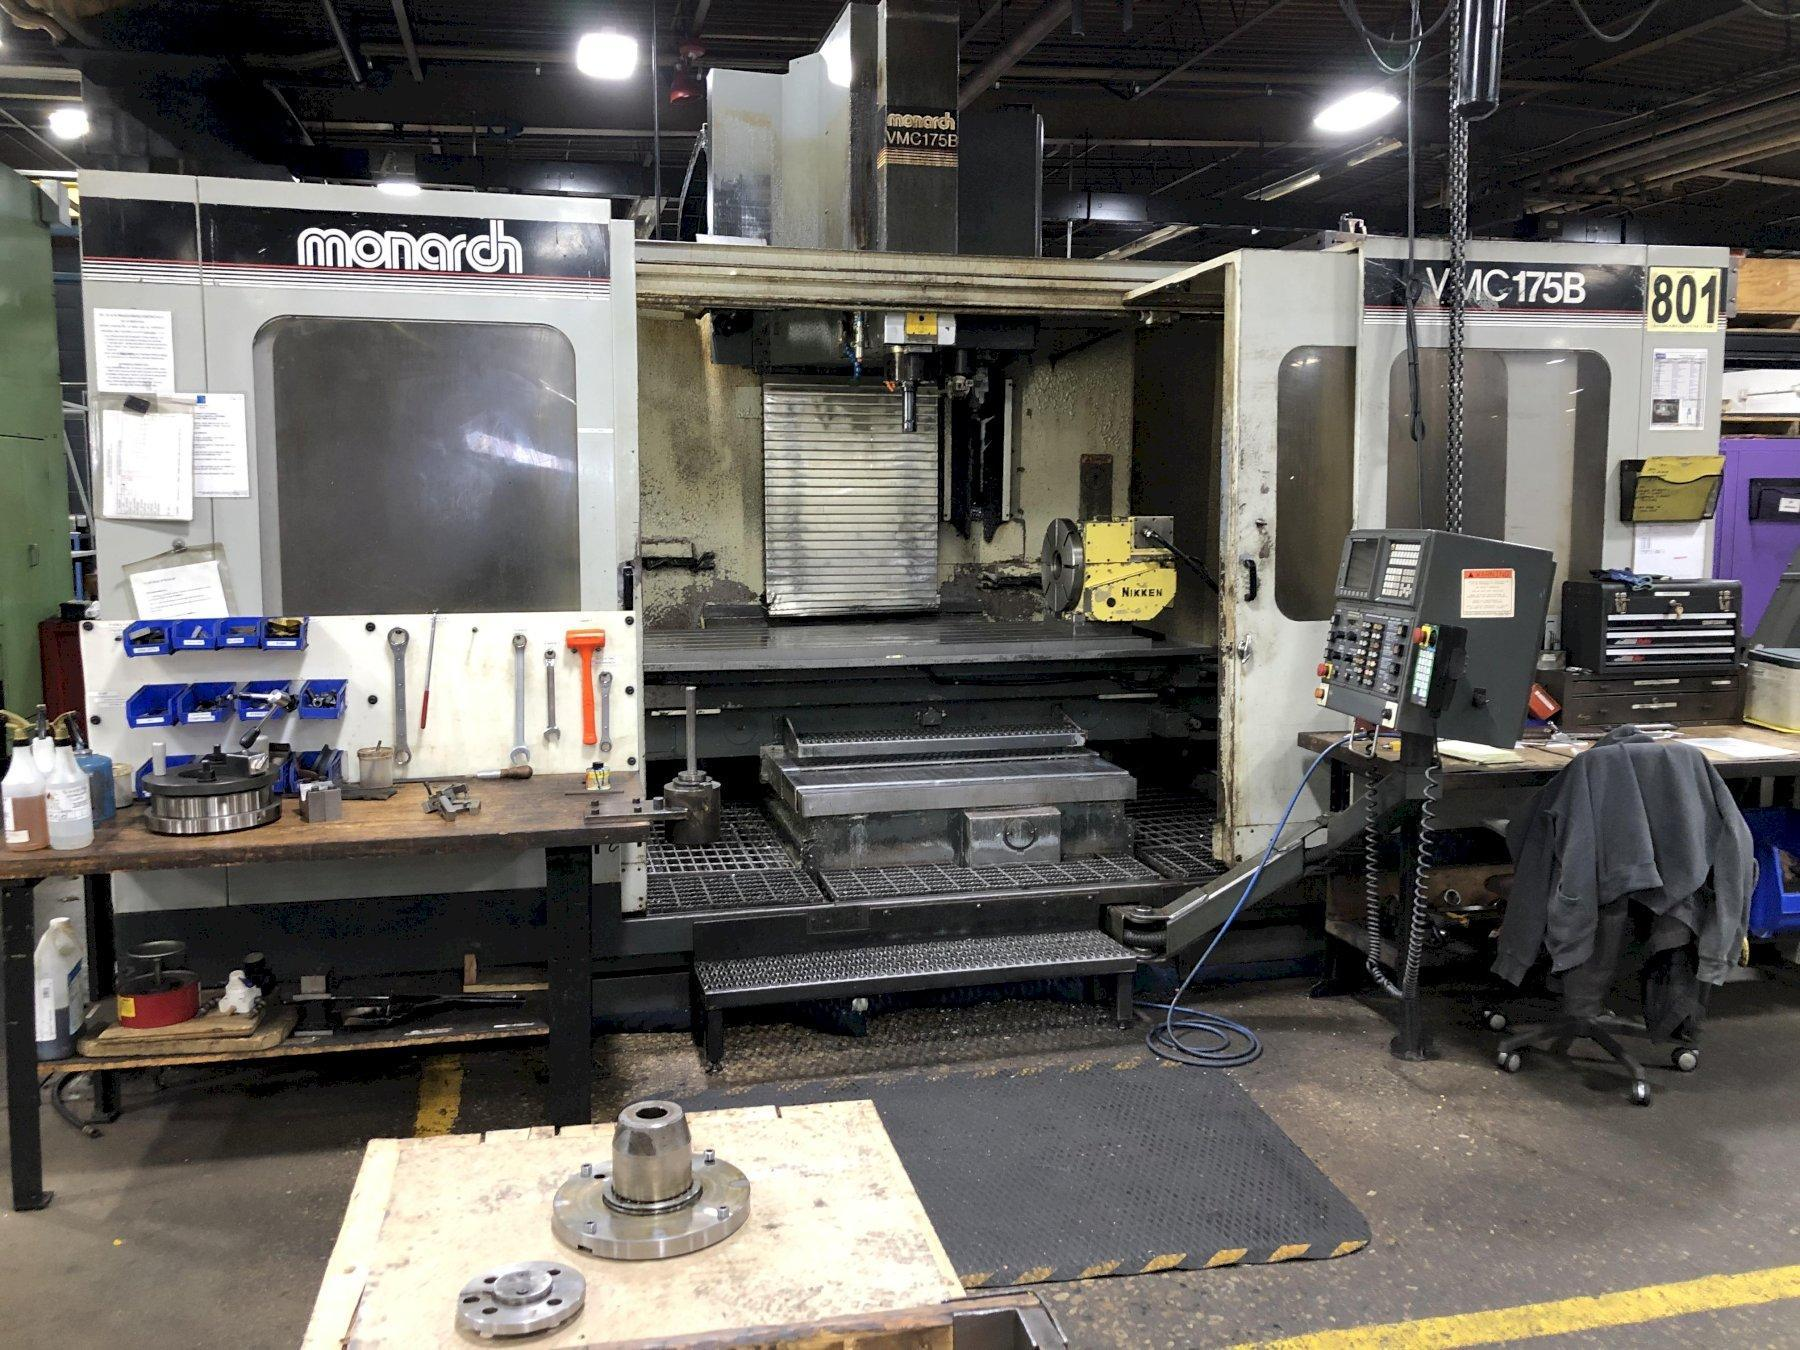 "MONARCH VMC175 WITH EXTENDED Z, 47"" Z CLEARANCE, 36 X 76 X 44 TRAVELS, FANUC 15M, TSC, OUTRIGGERS, 1994, NEW BALLSCREW  2018, NEWER SCALES"